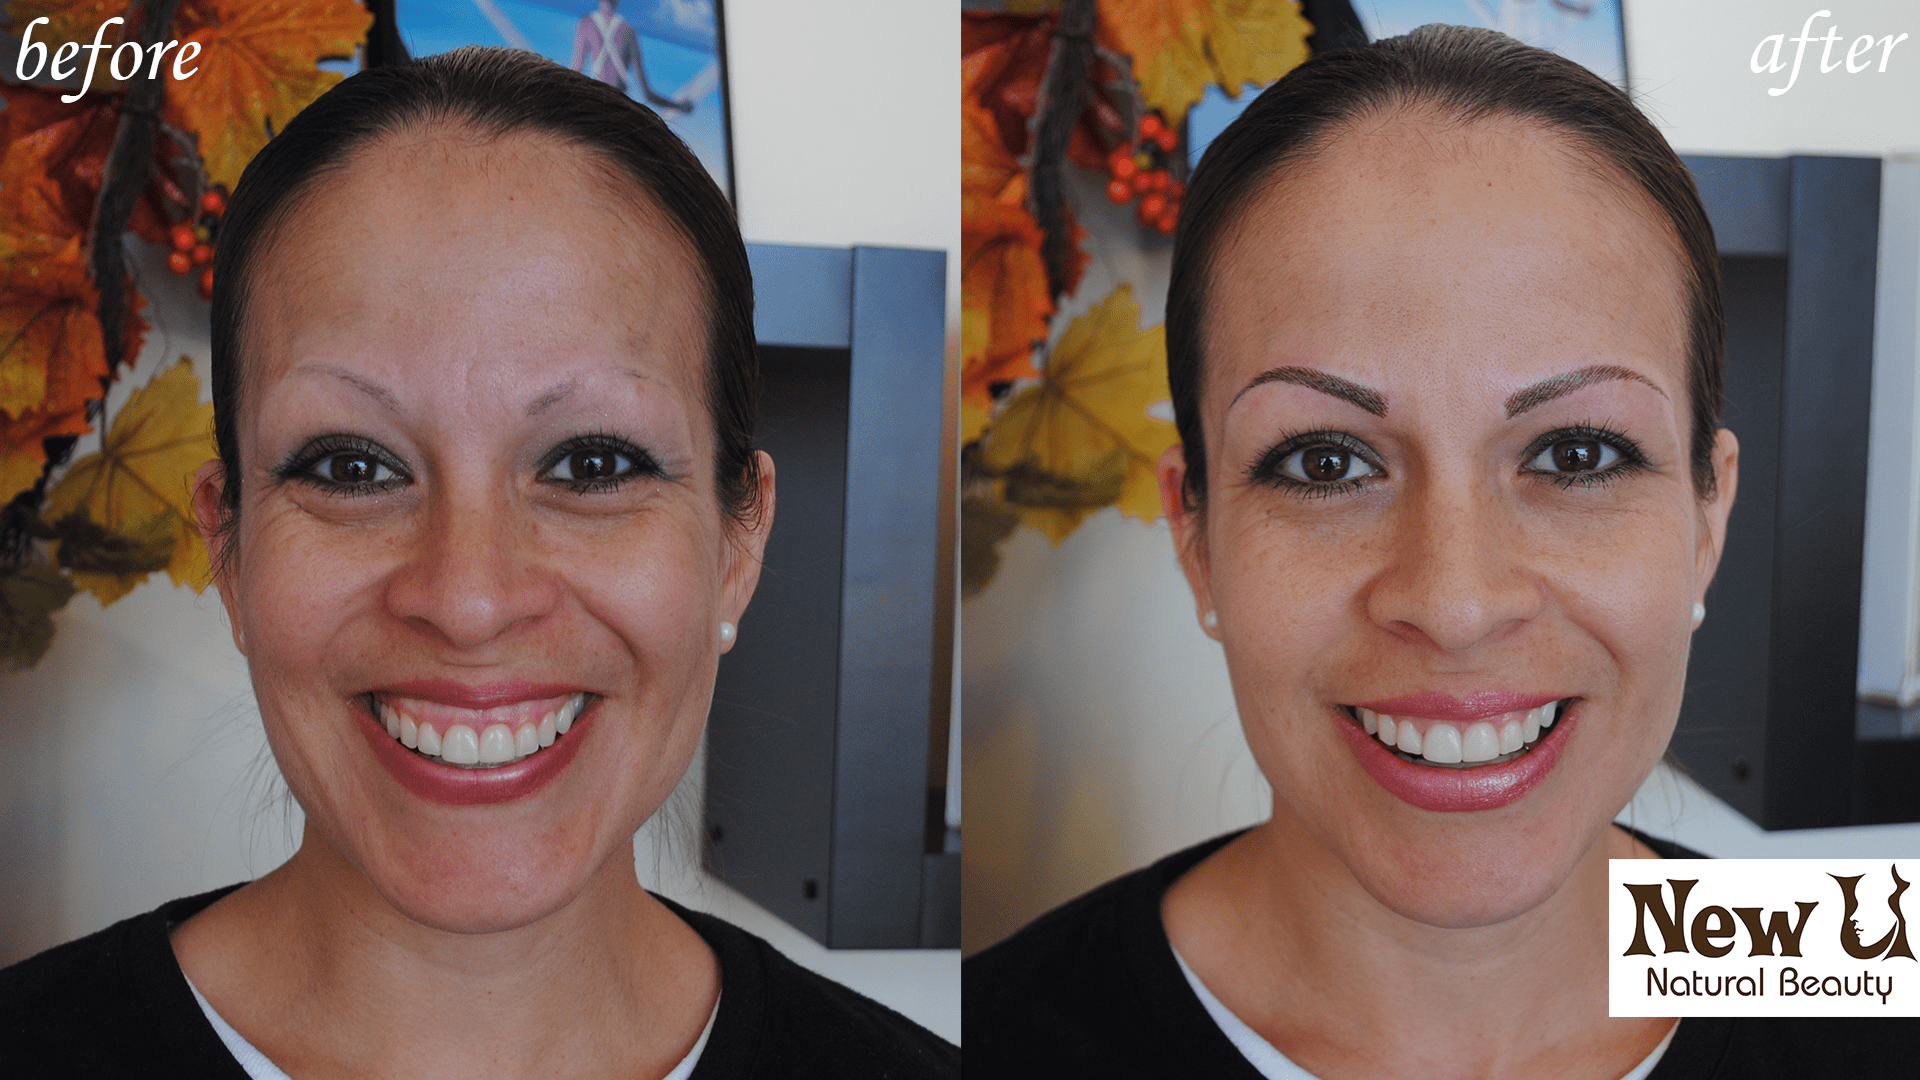 Permanent Makeup 6 Las Vegas Before and After